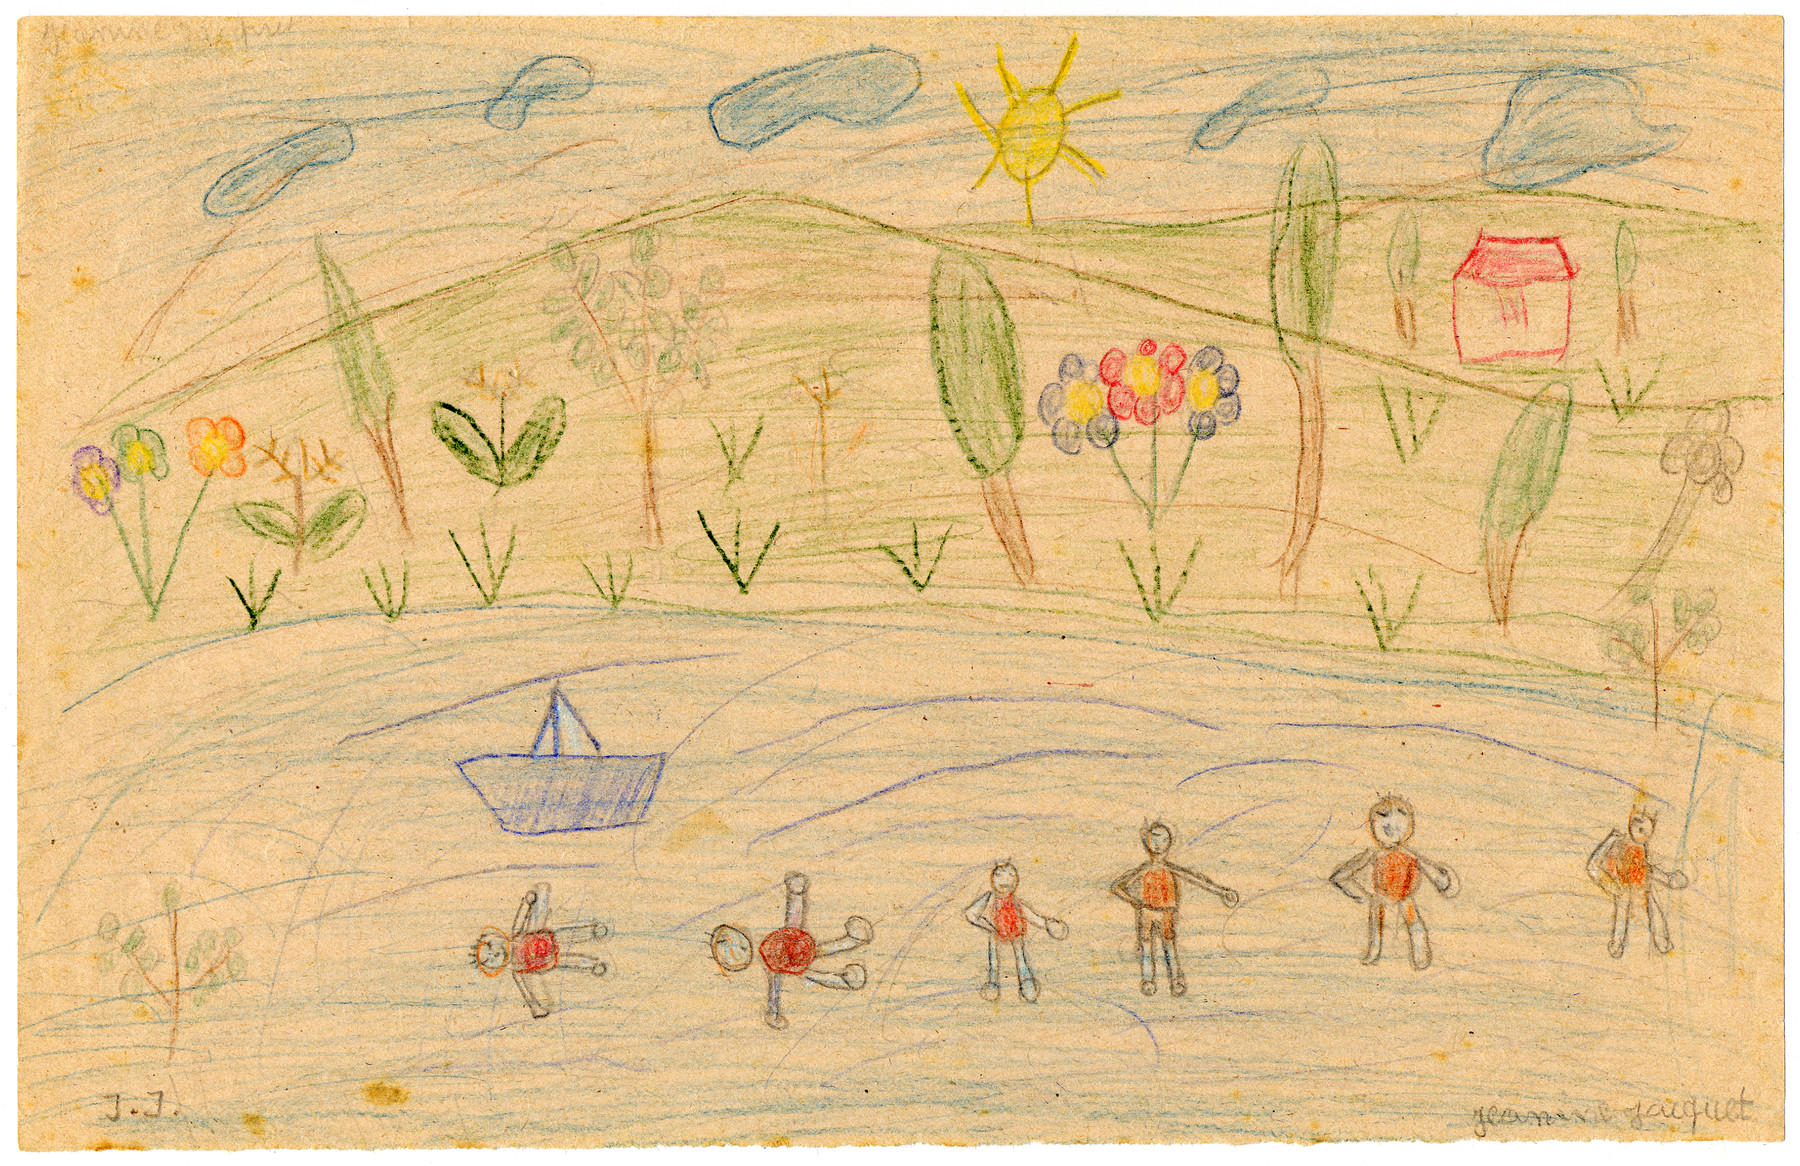 A child's drawing of swimming/playing in a lake in Chateau de la Hille.